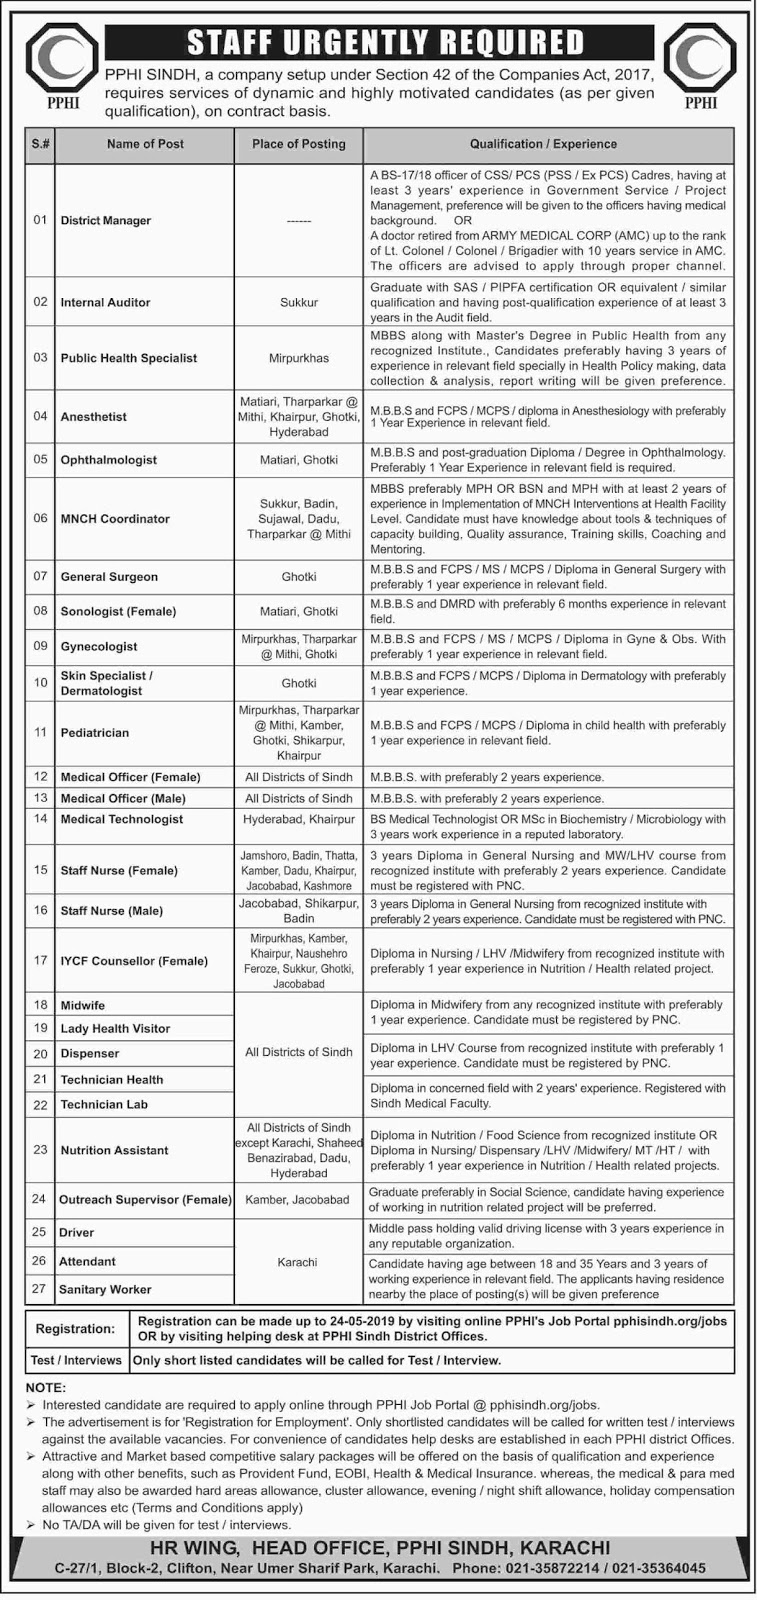 PPHI Sindh Jobs May 2019 Apply Online